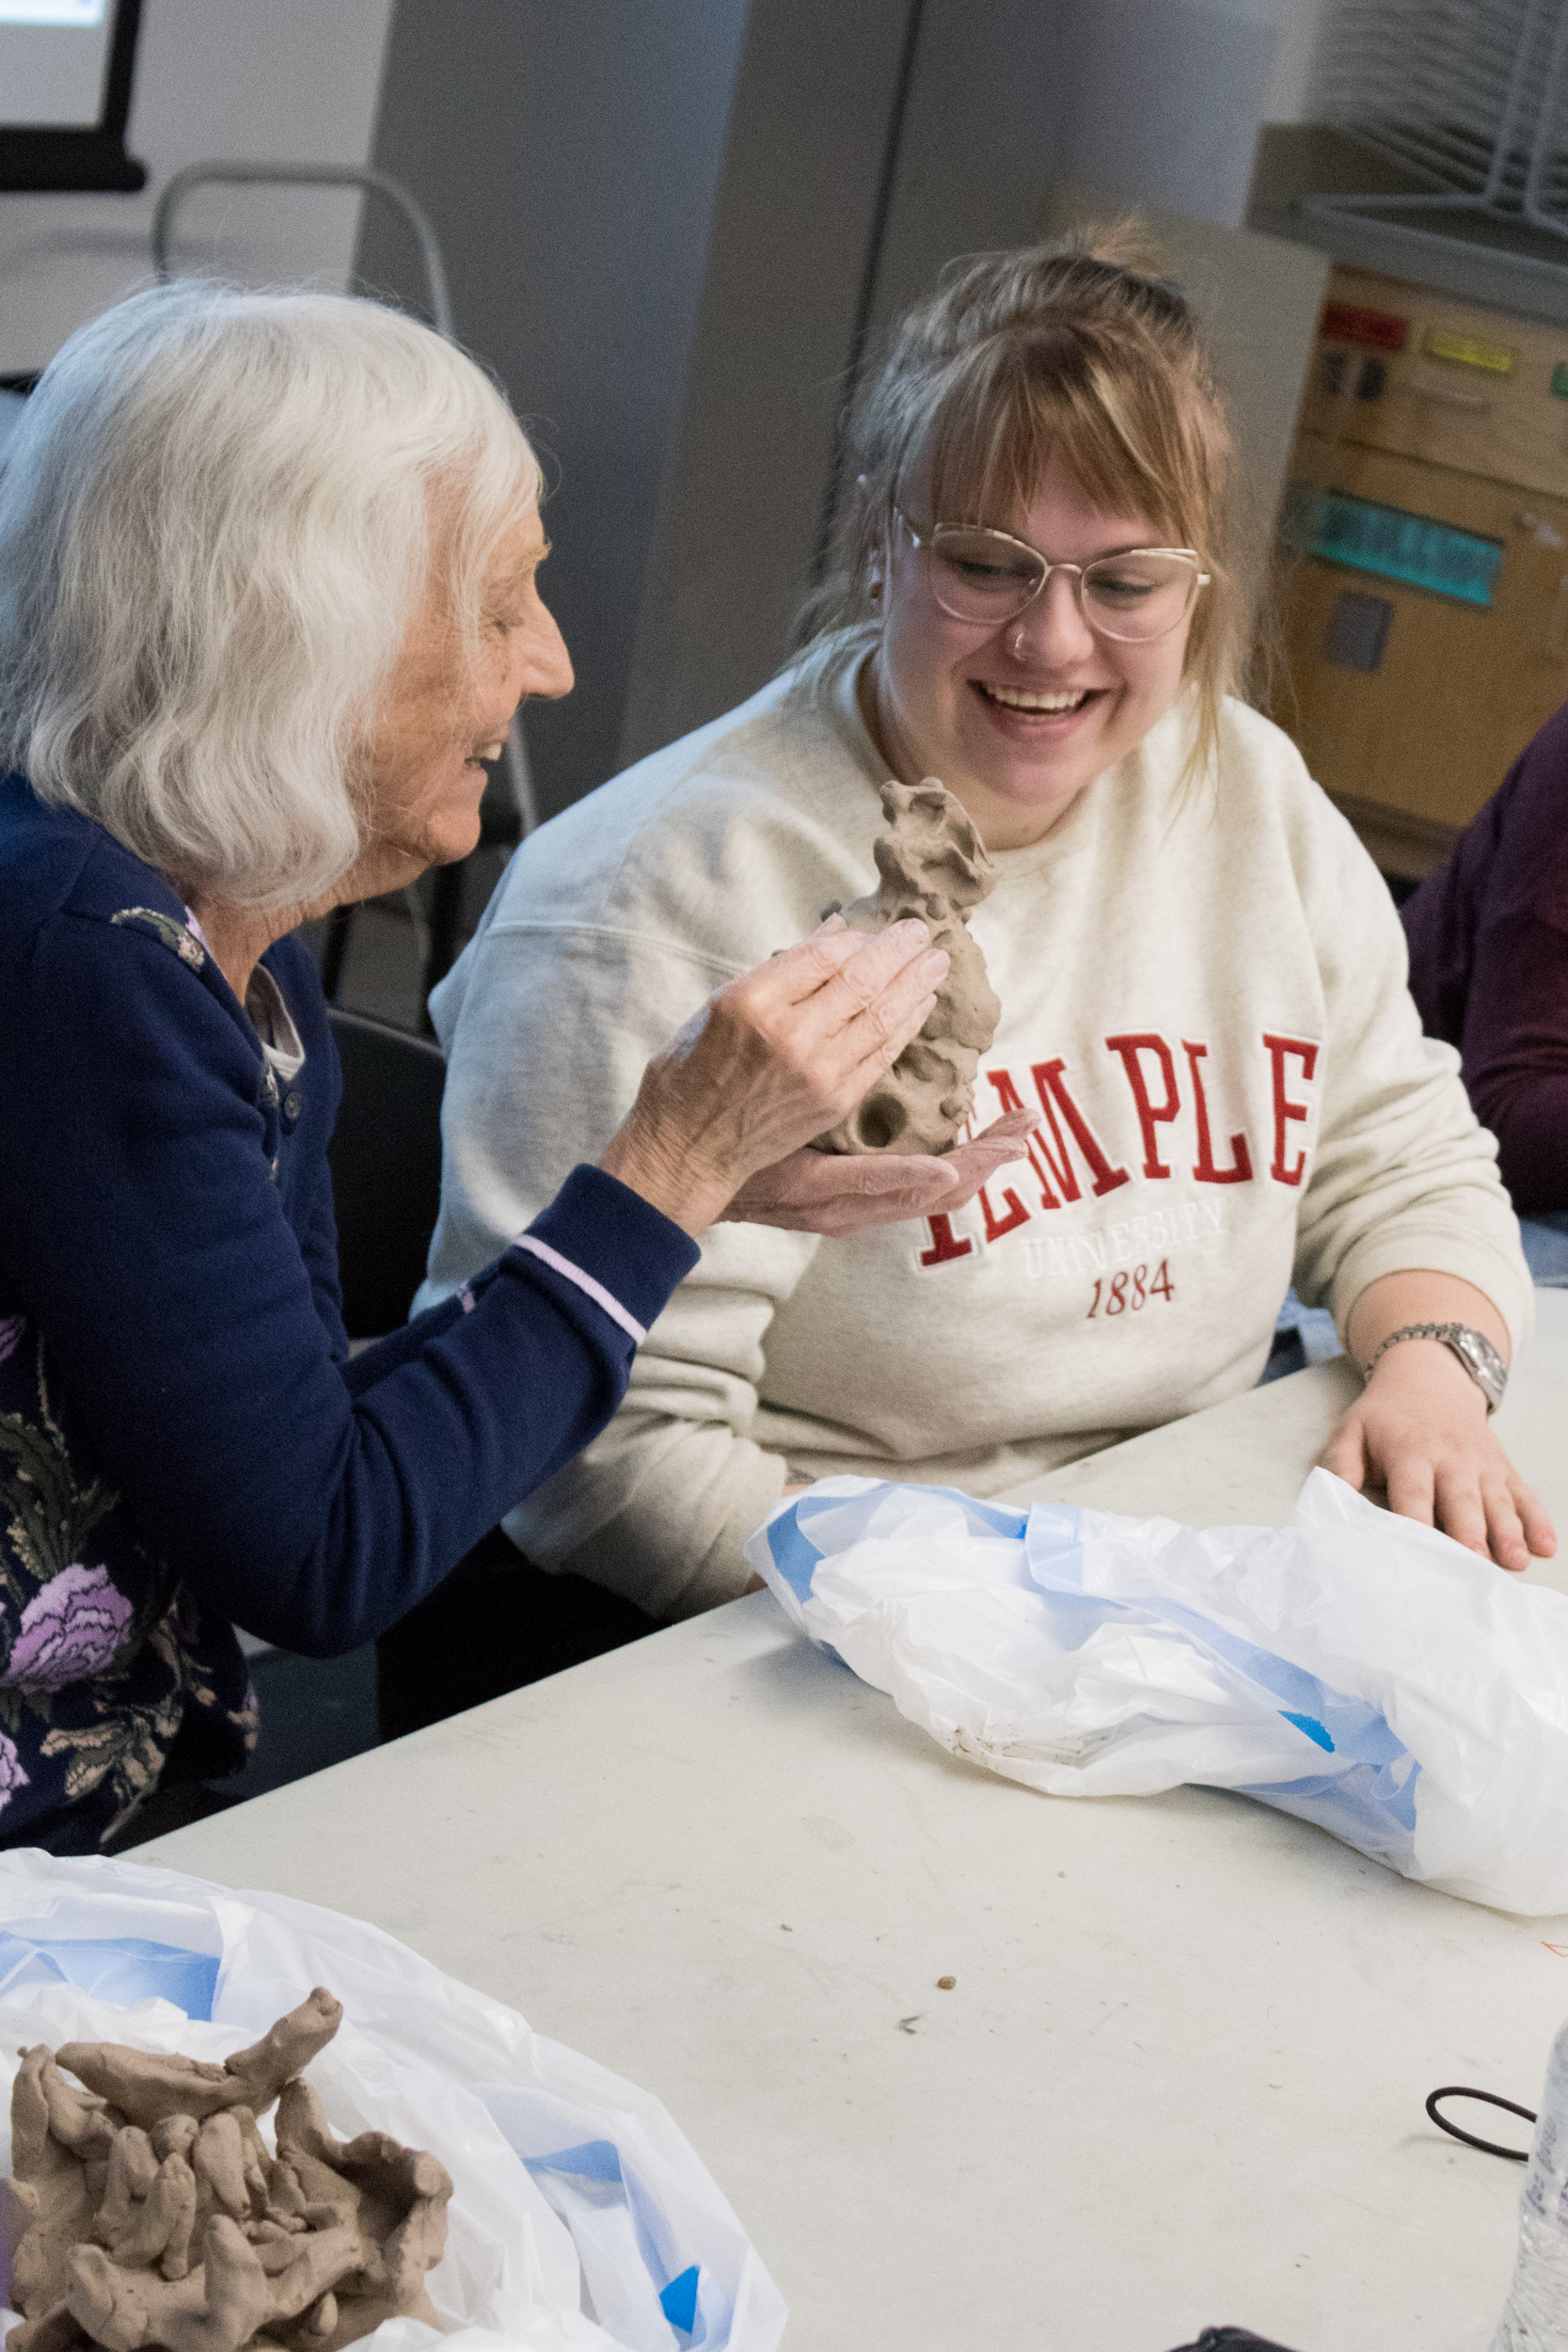 Carol Saylor uses her hands to examine a student's clay sculpture.